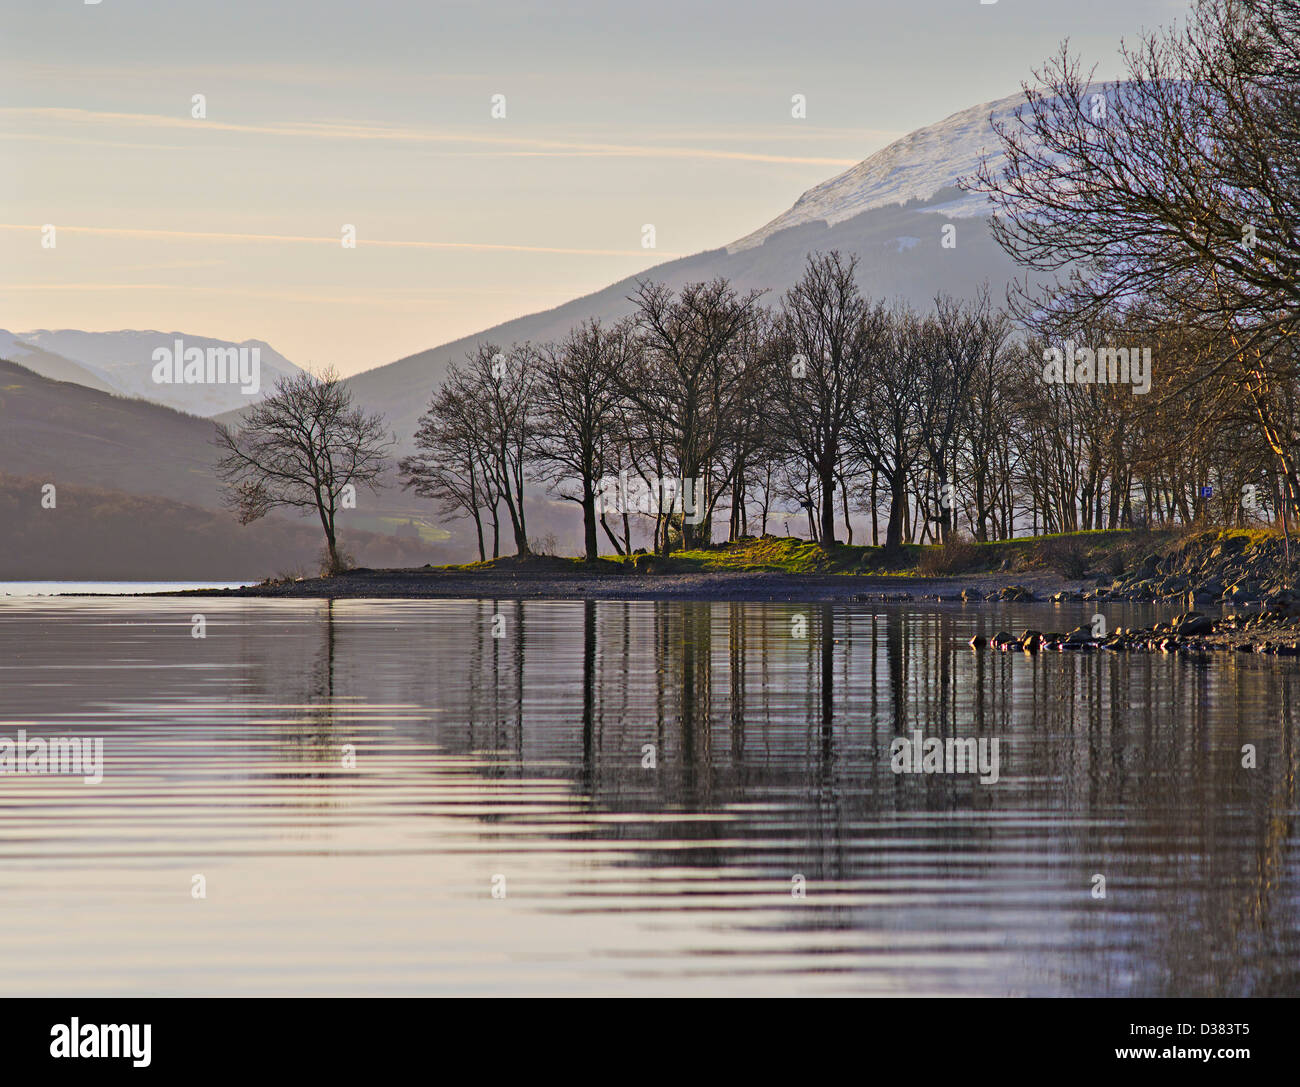 Loch Earn with silhouetted headland and trees with distant hills, Perthshire, Scotland - Stock Image